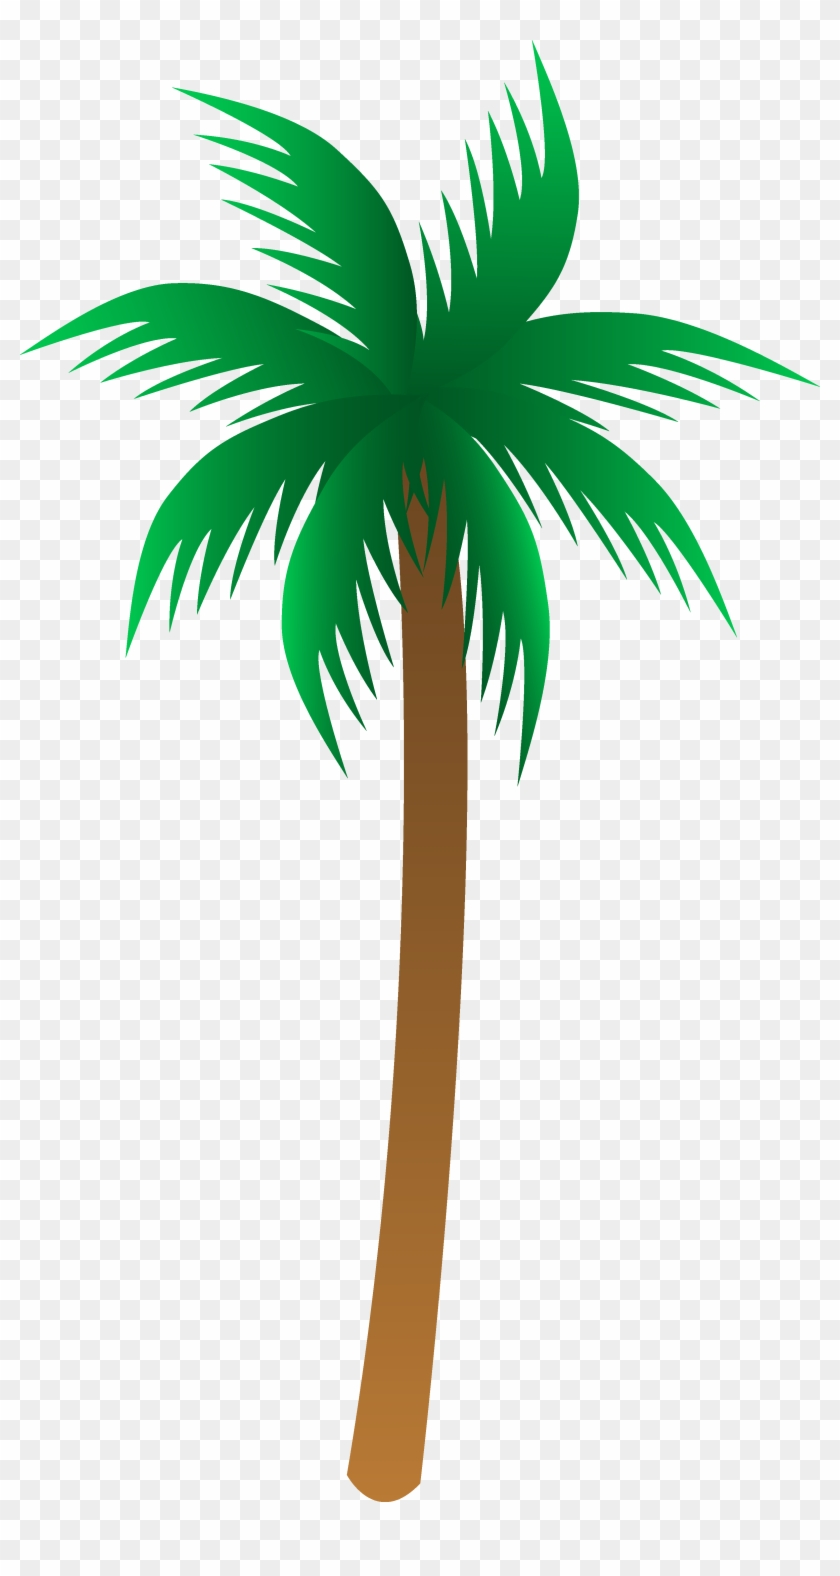 Palm Tree Clipart - Palm Tree Clipart #606